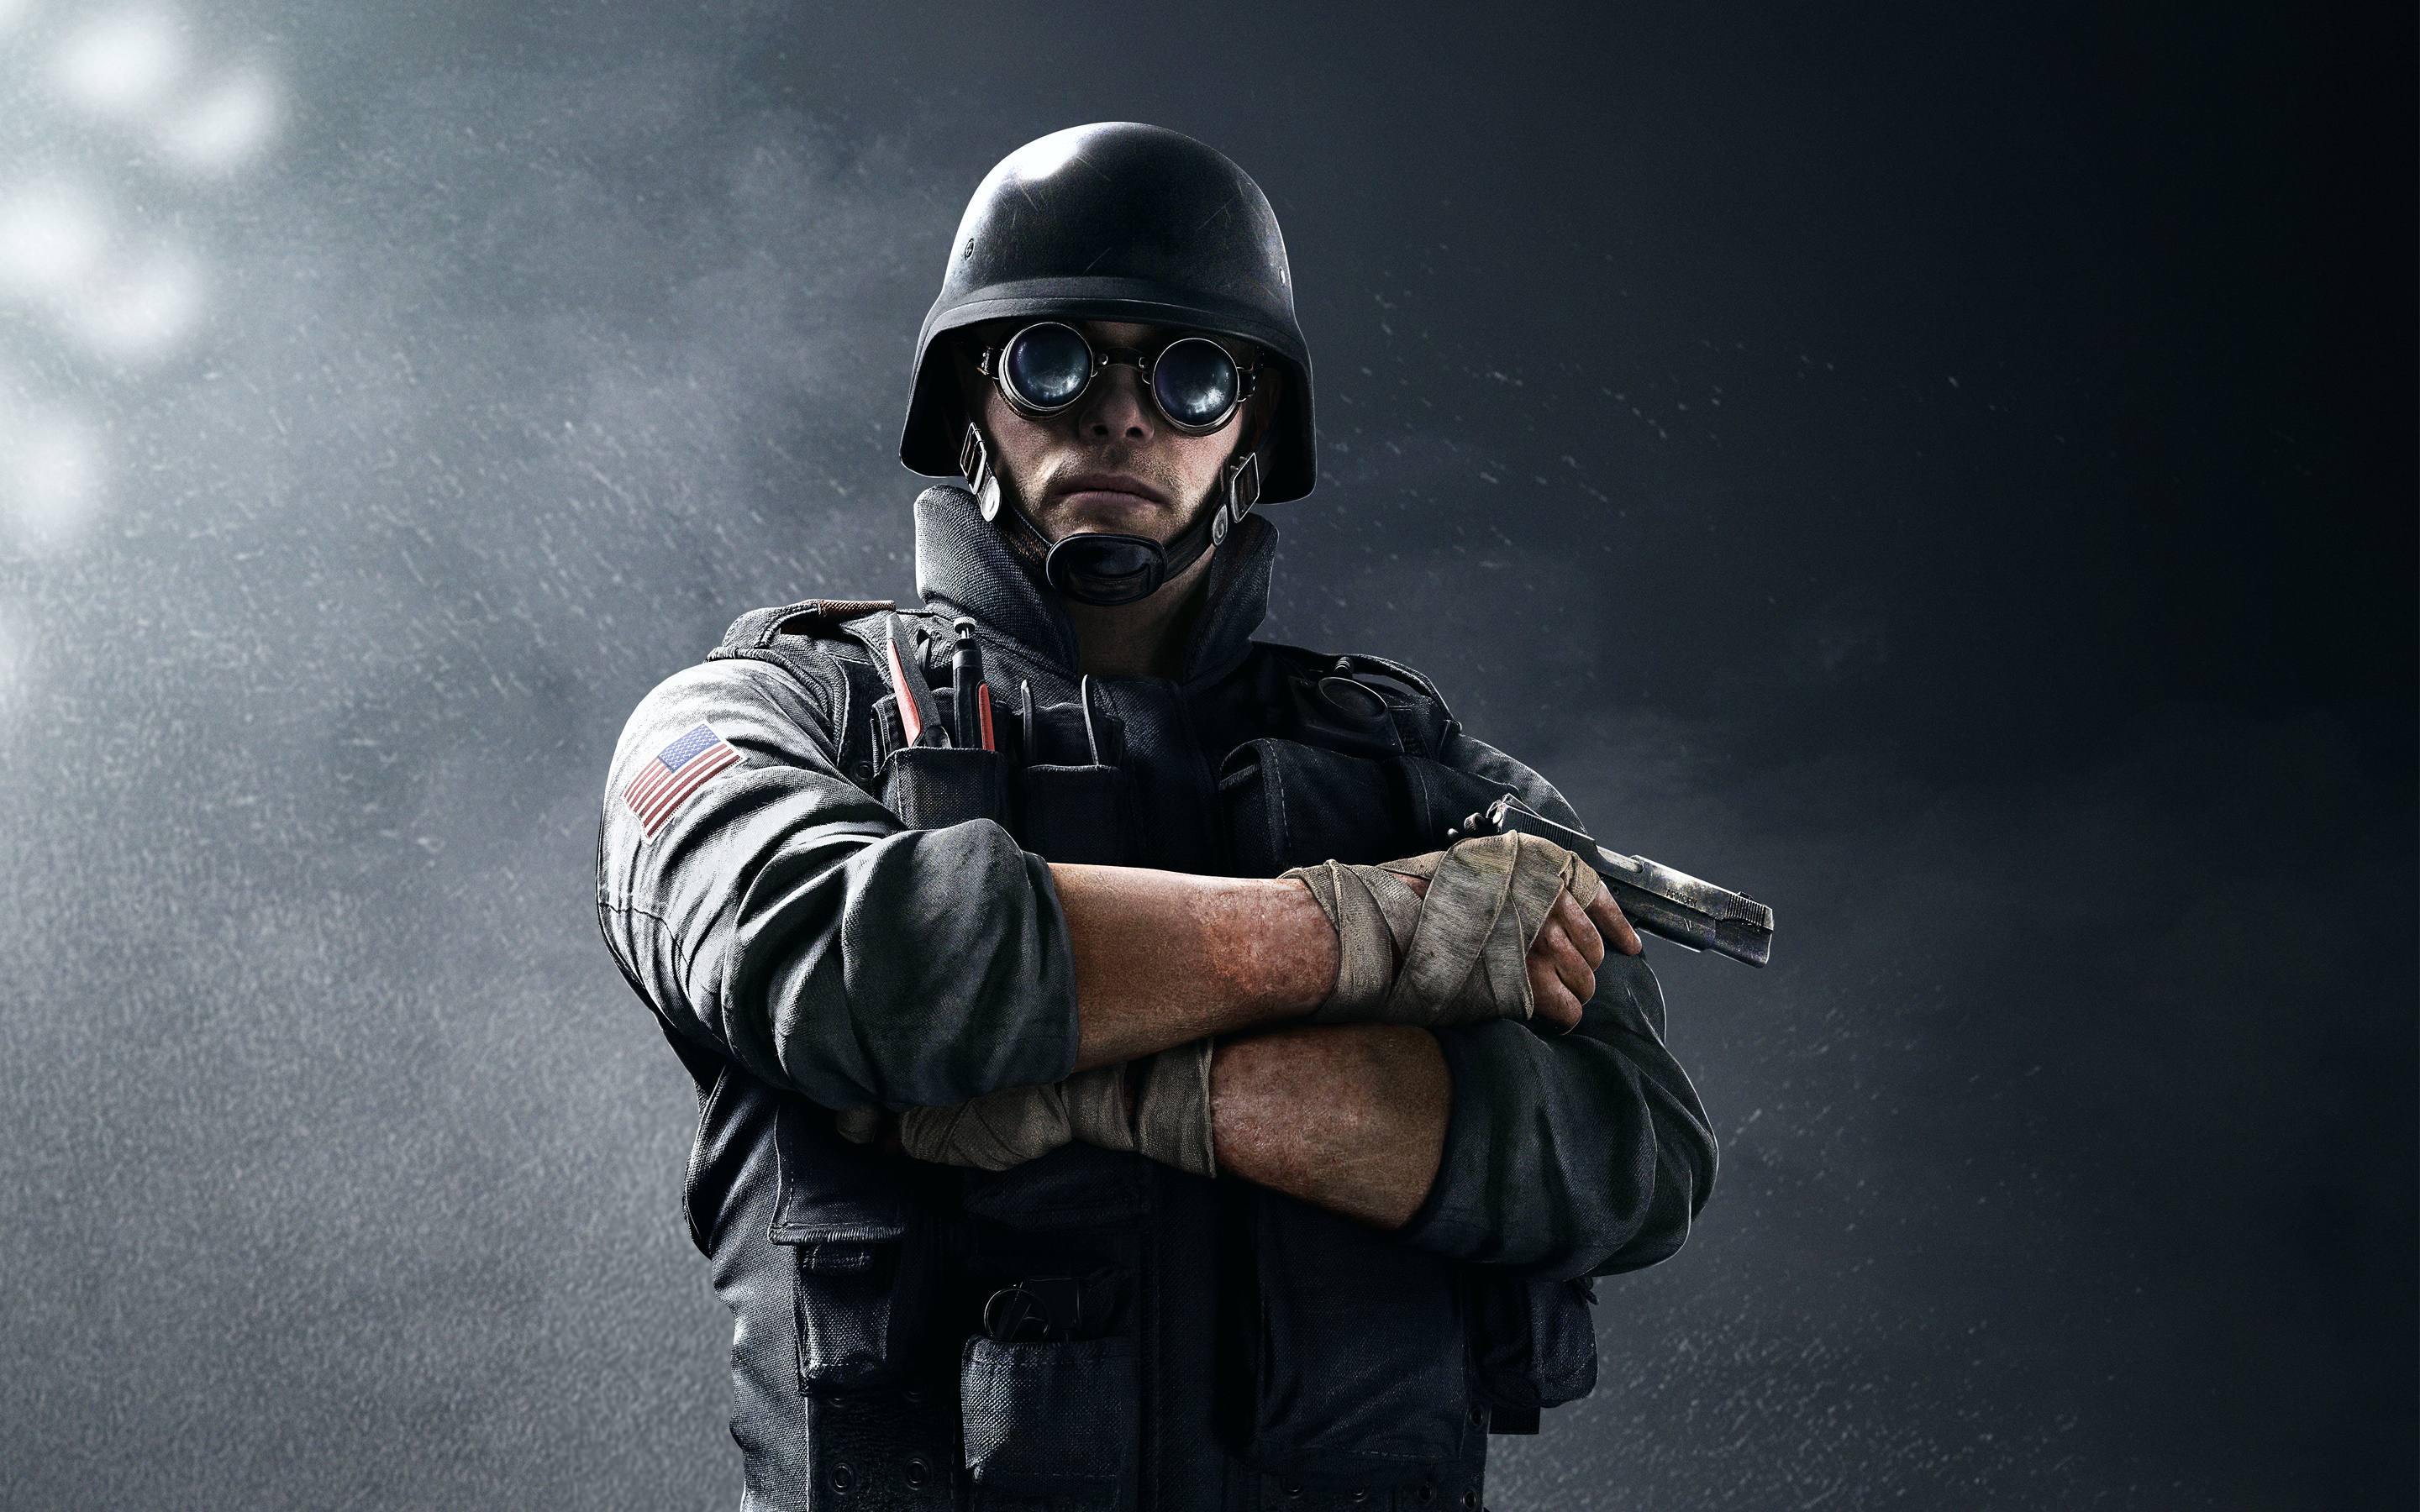 Siege 4k Wallpapers For Your Desktop Or Mobile Screen Free And